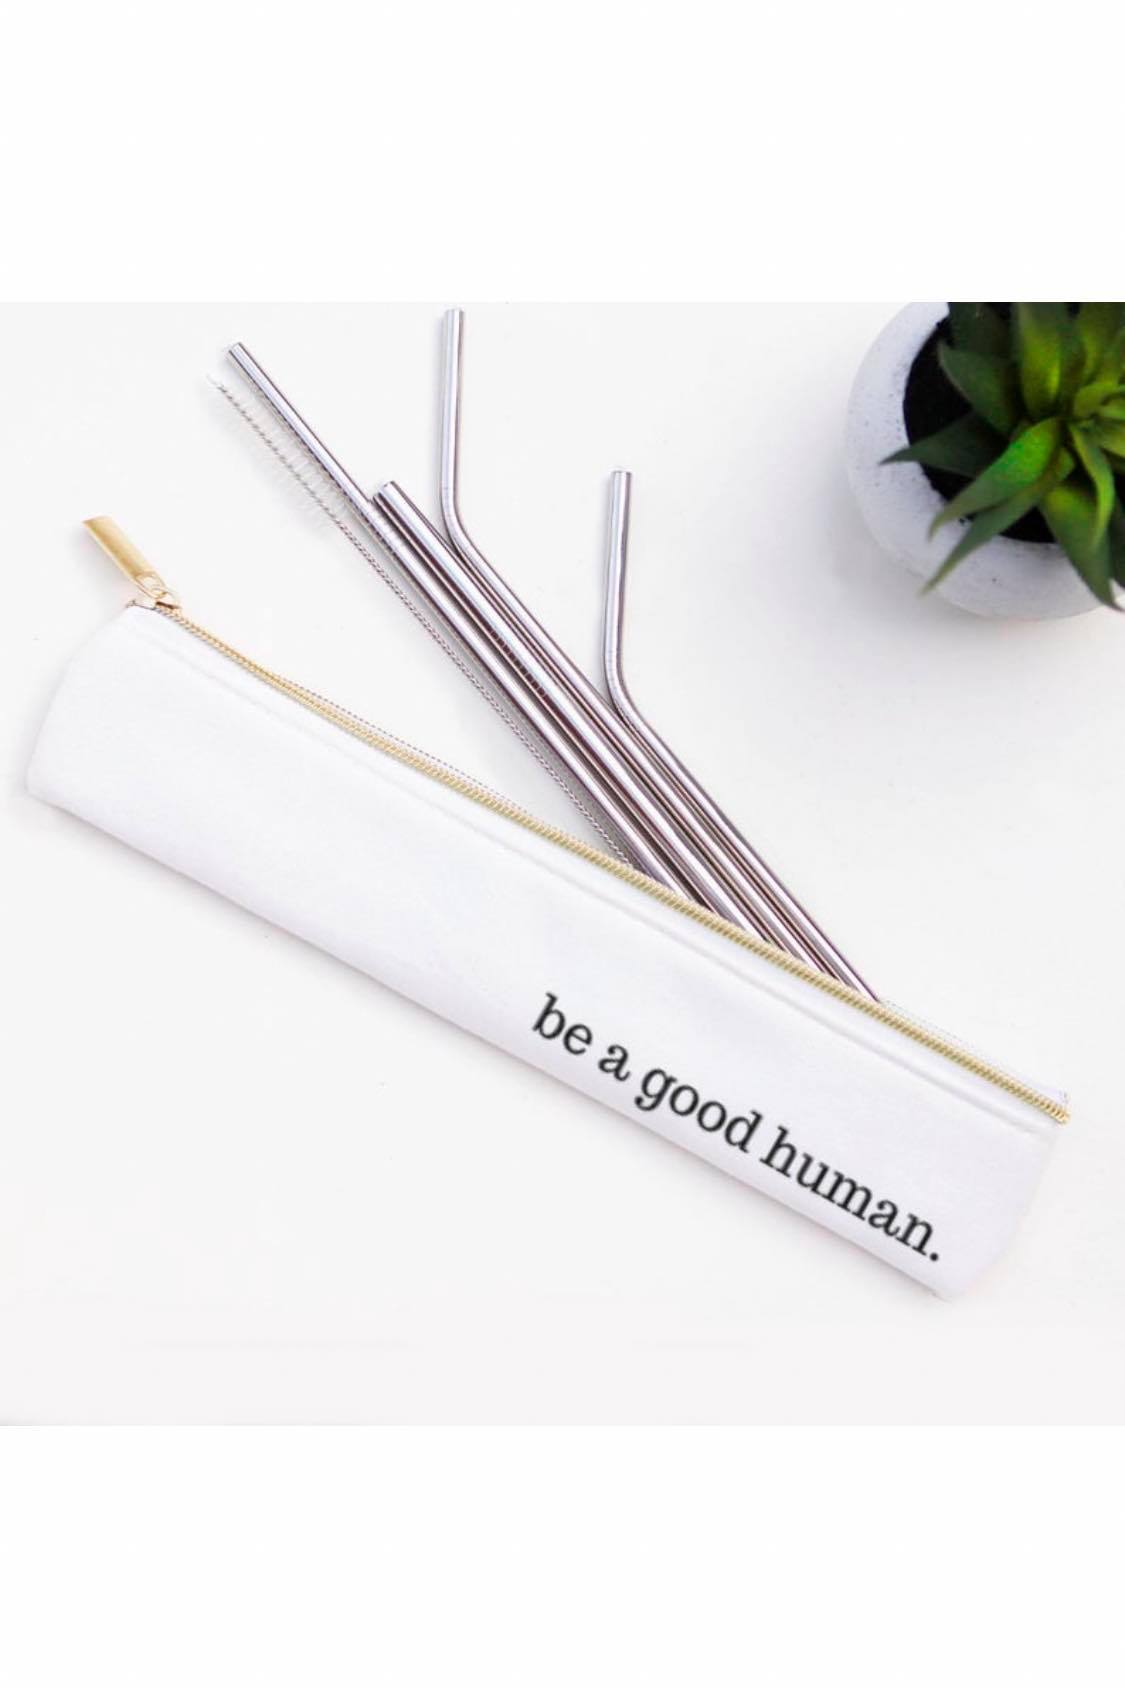 Reusable Straw Set ~ Be a Good Human